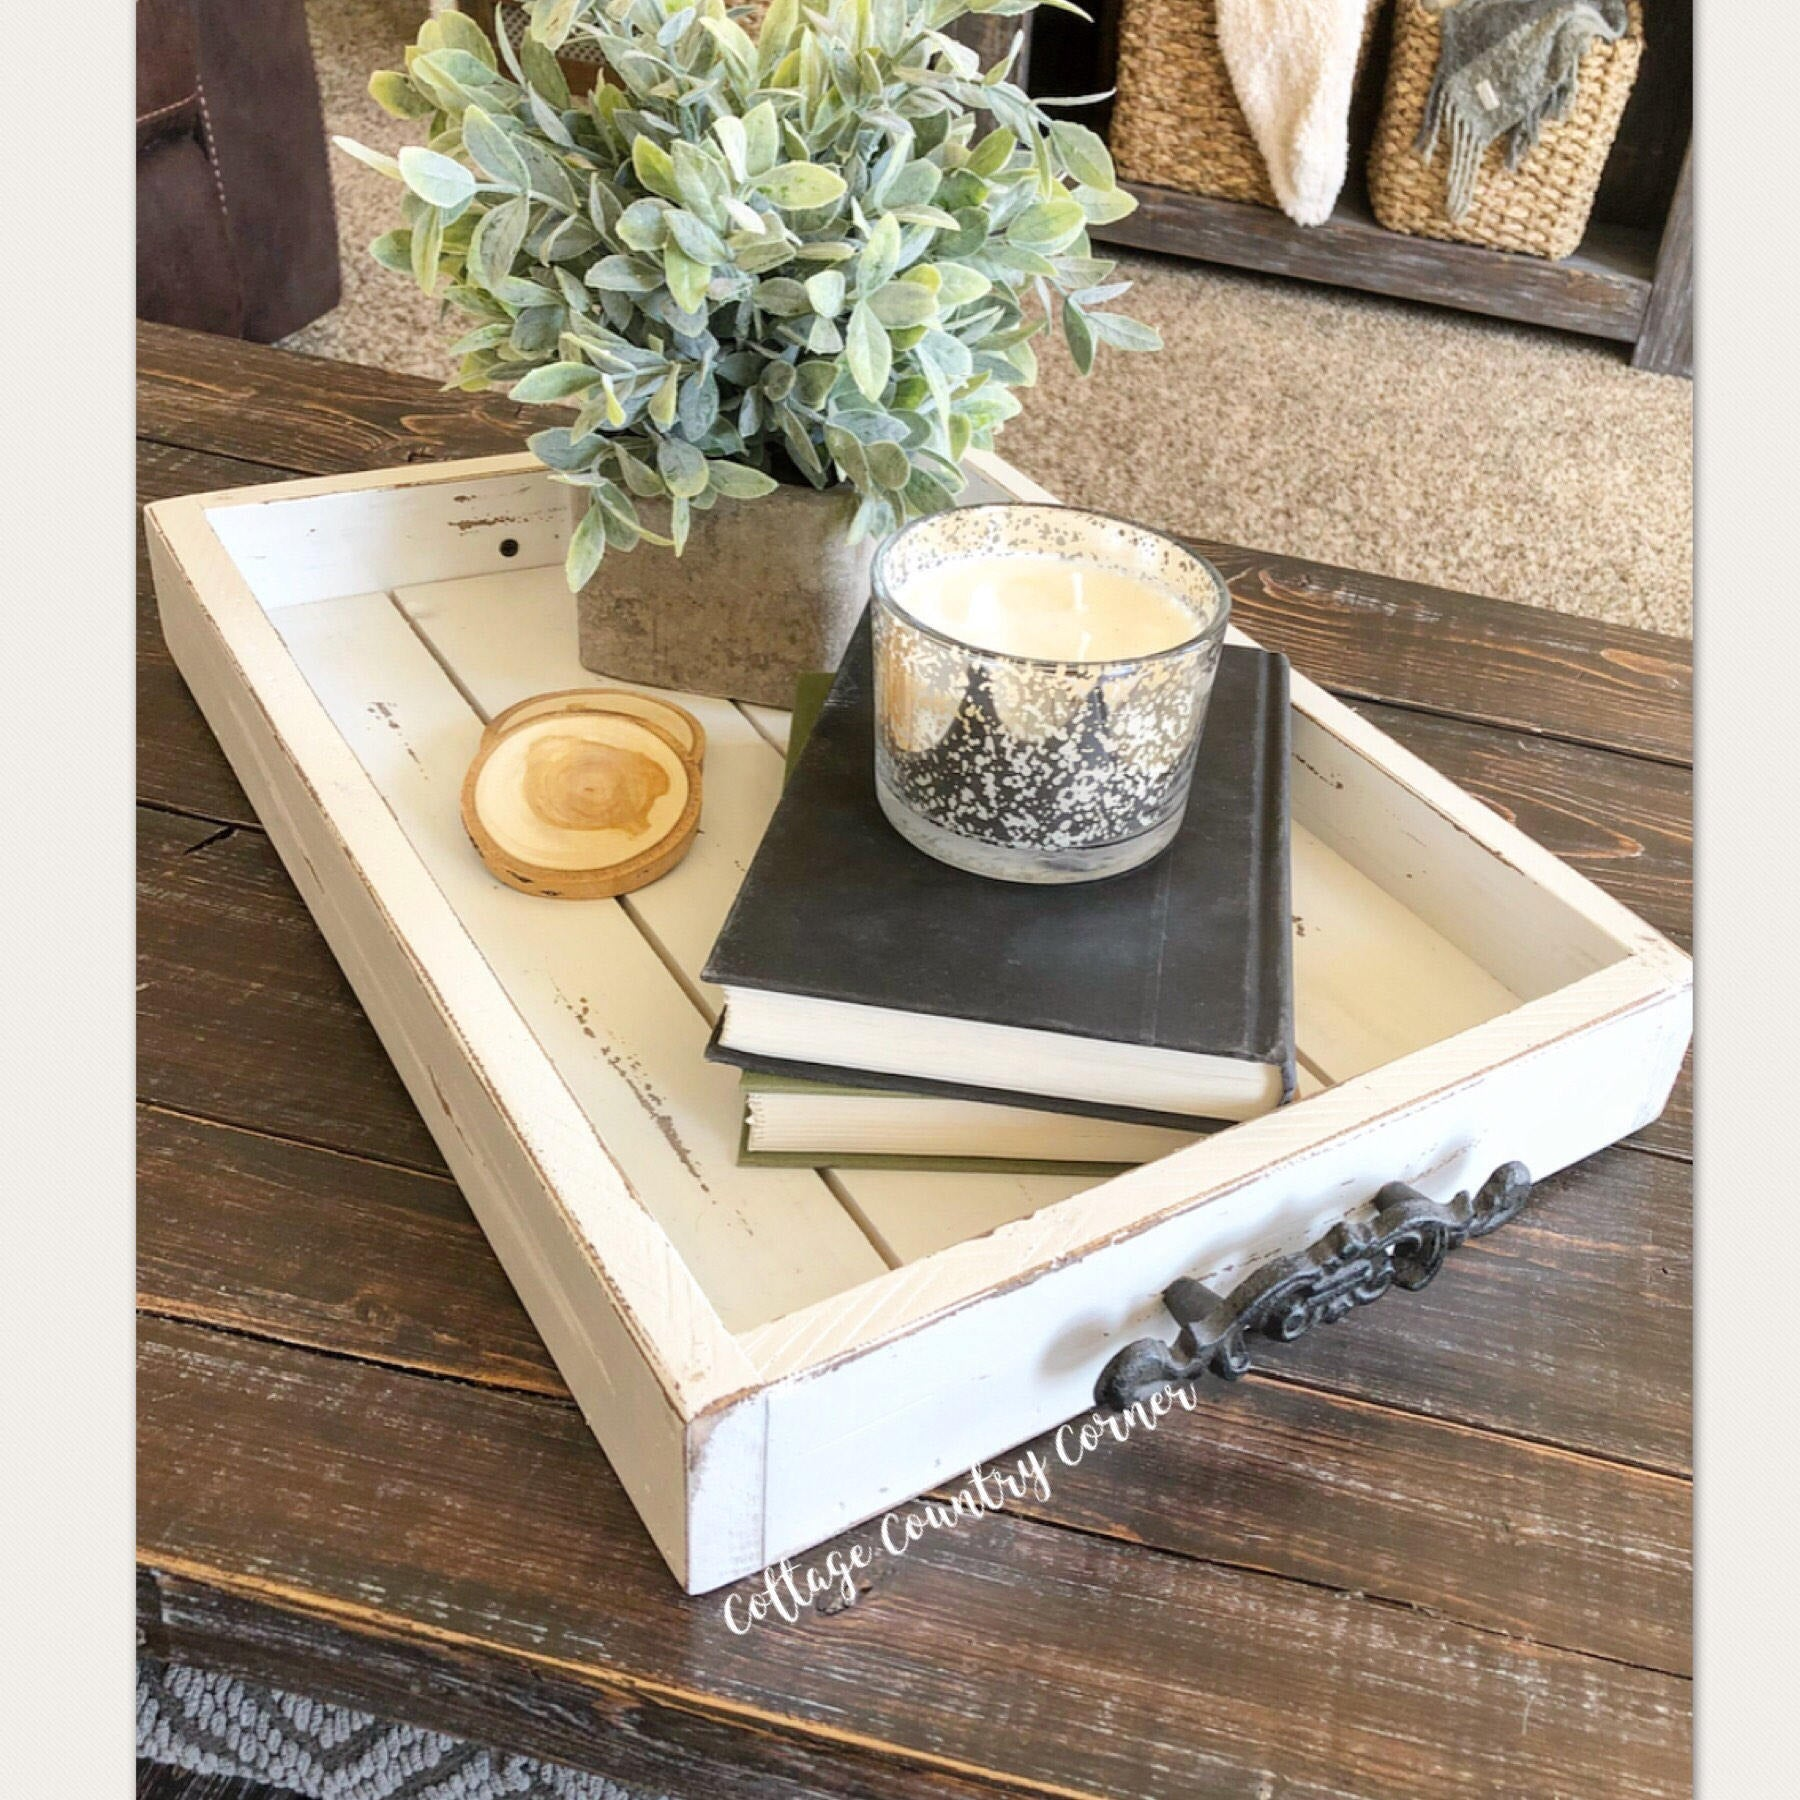 14 x 20 Magazine Tray - Coffee Table Tray - Magazine Tray - Coffee Table Tray - Rustic wooden ottoman tray - decorative tray - coffee table